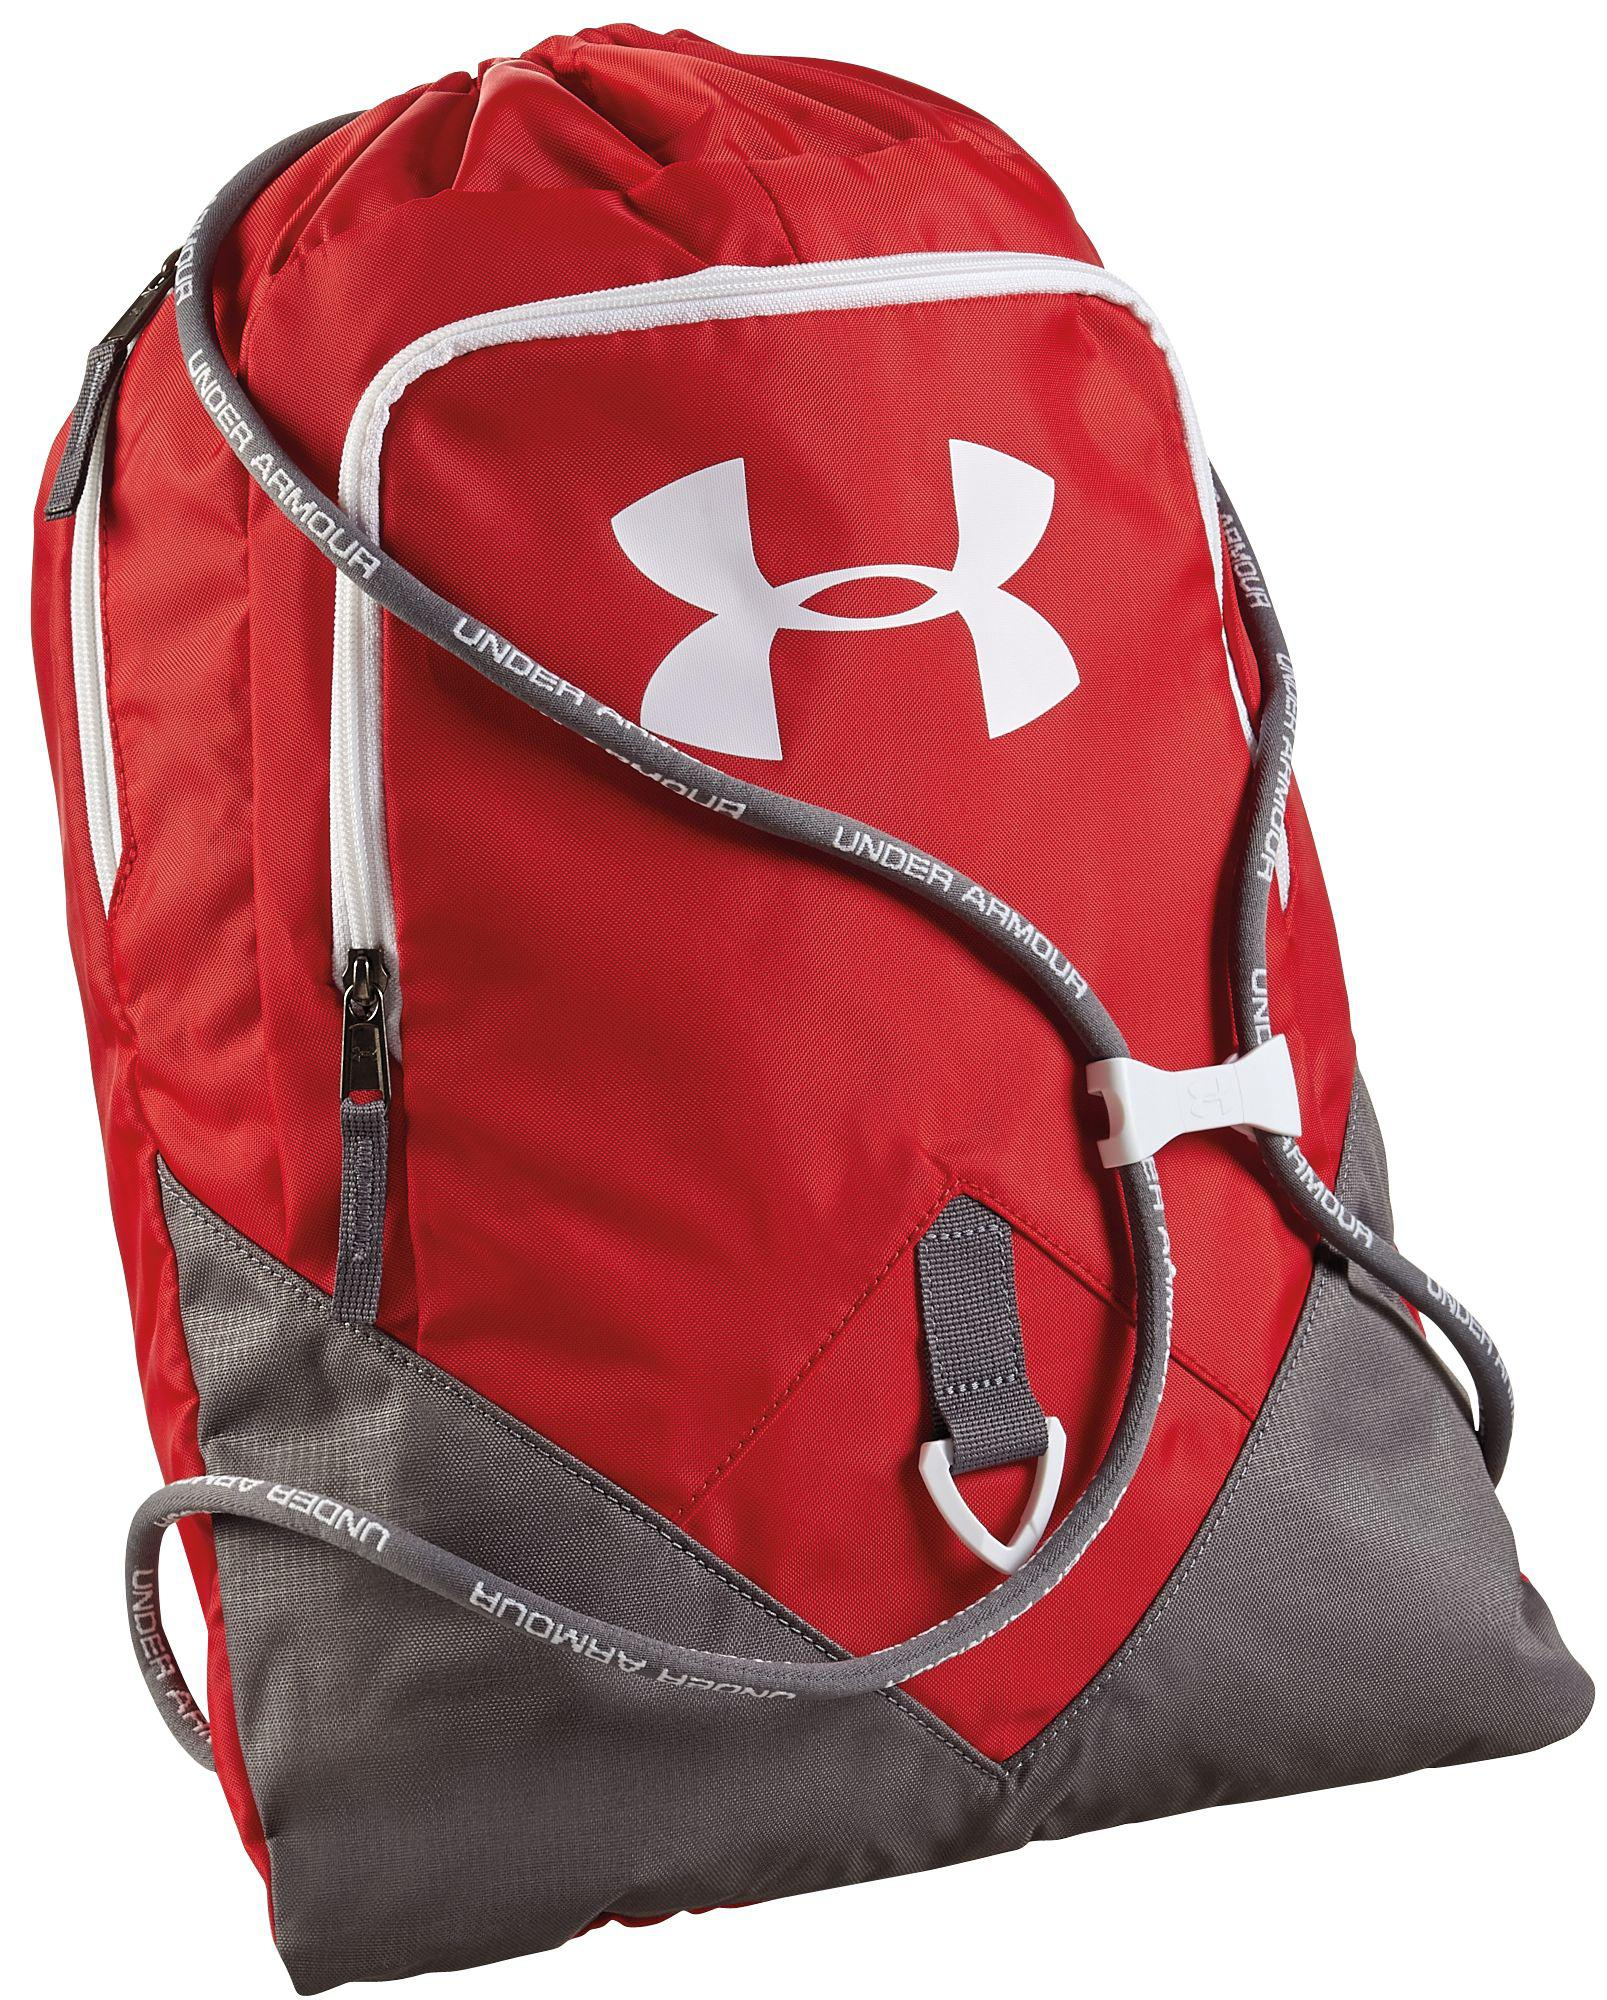 new products 0dc5d 7cfc0 Under Armour - Red Undeniable Sackpack for Men - Lyst